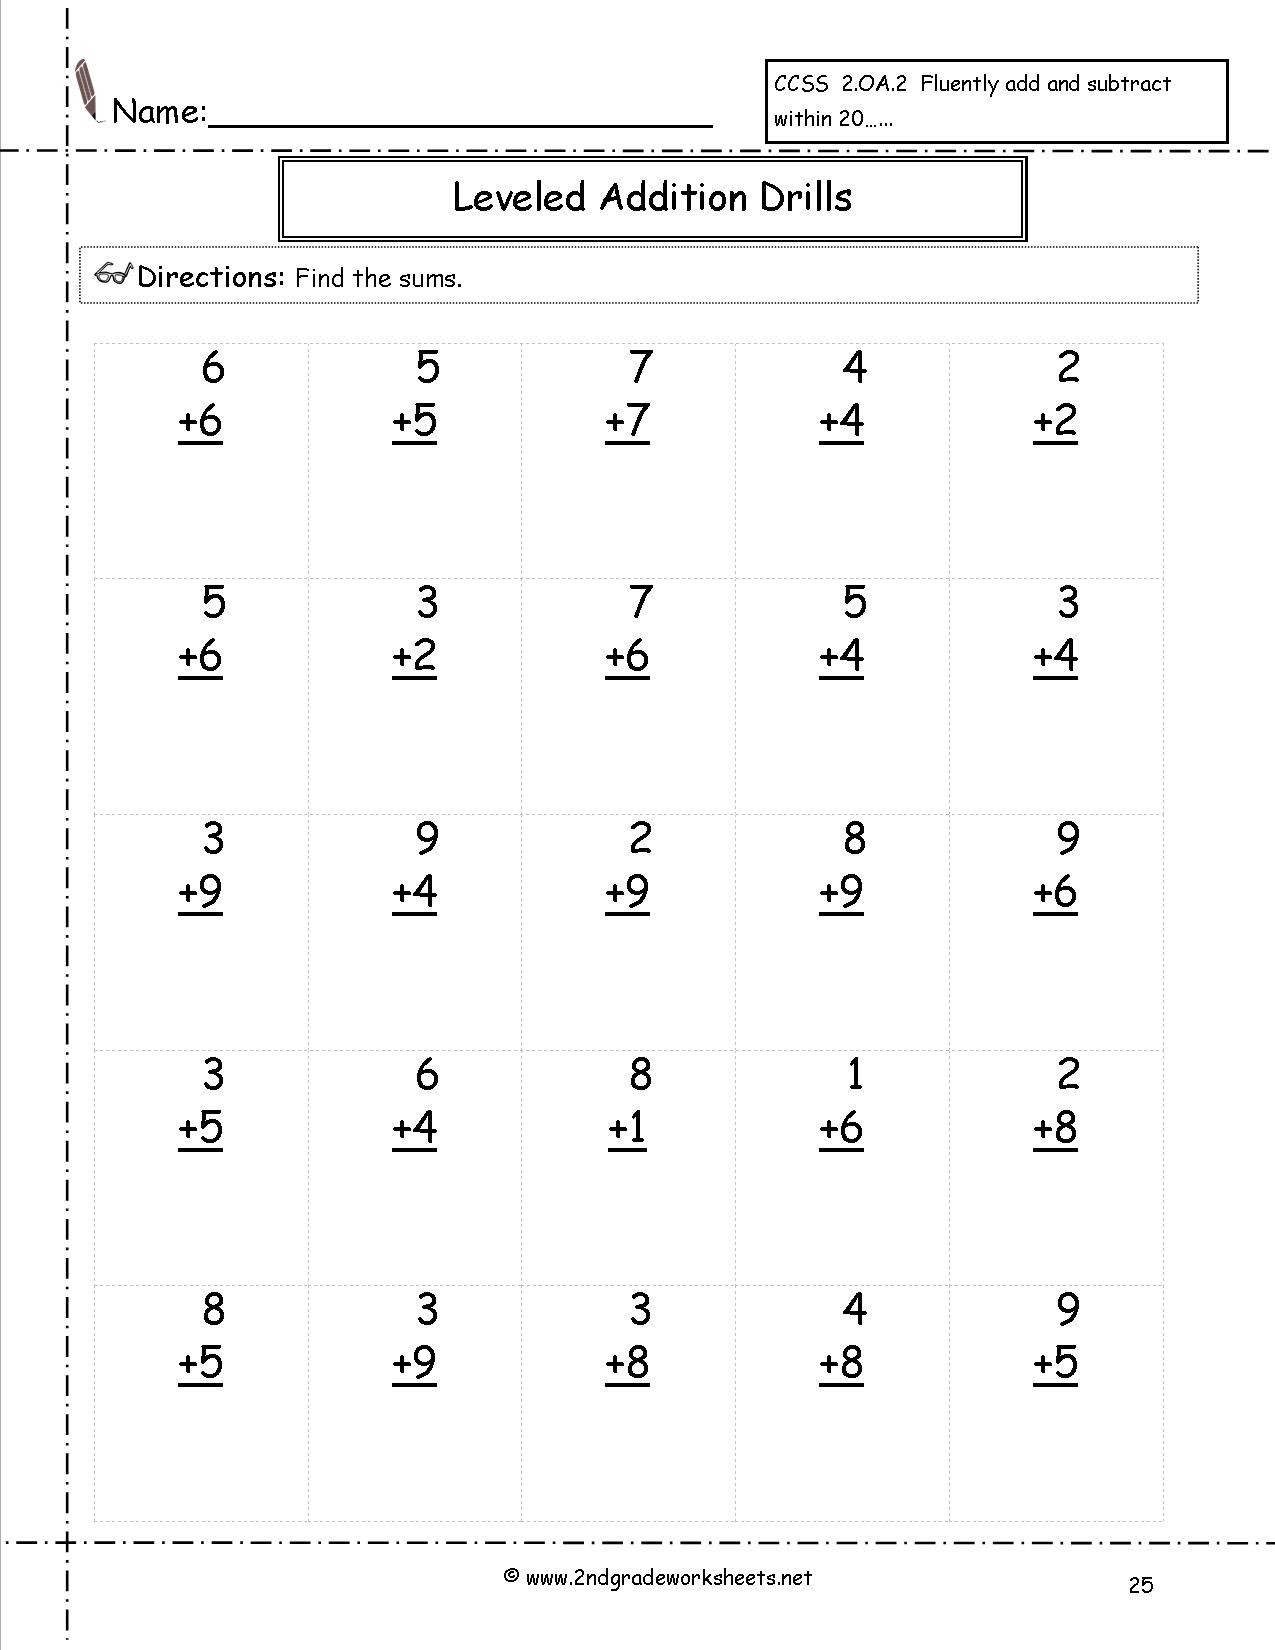 Construction Math Worksheets Third Grade Multiplication Worksheets to Print Number 4